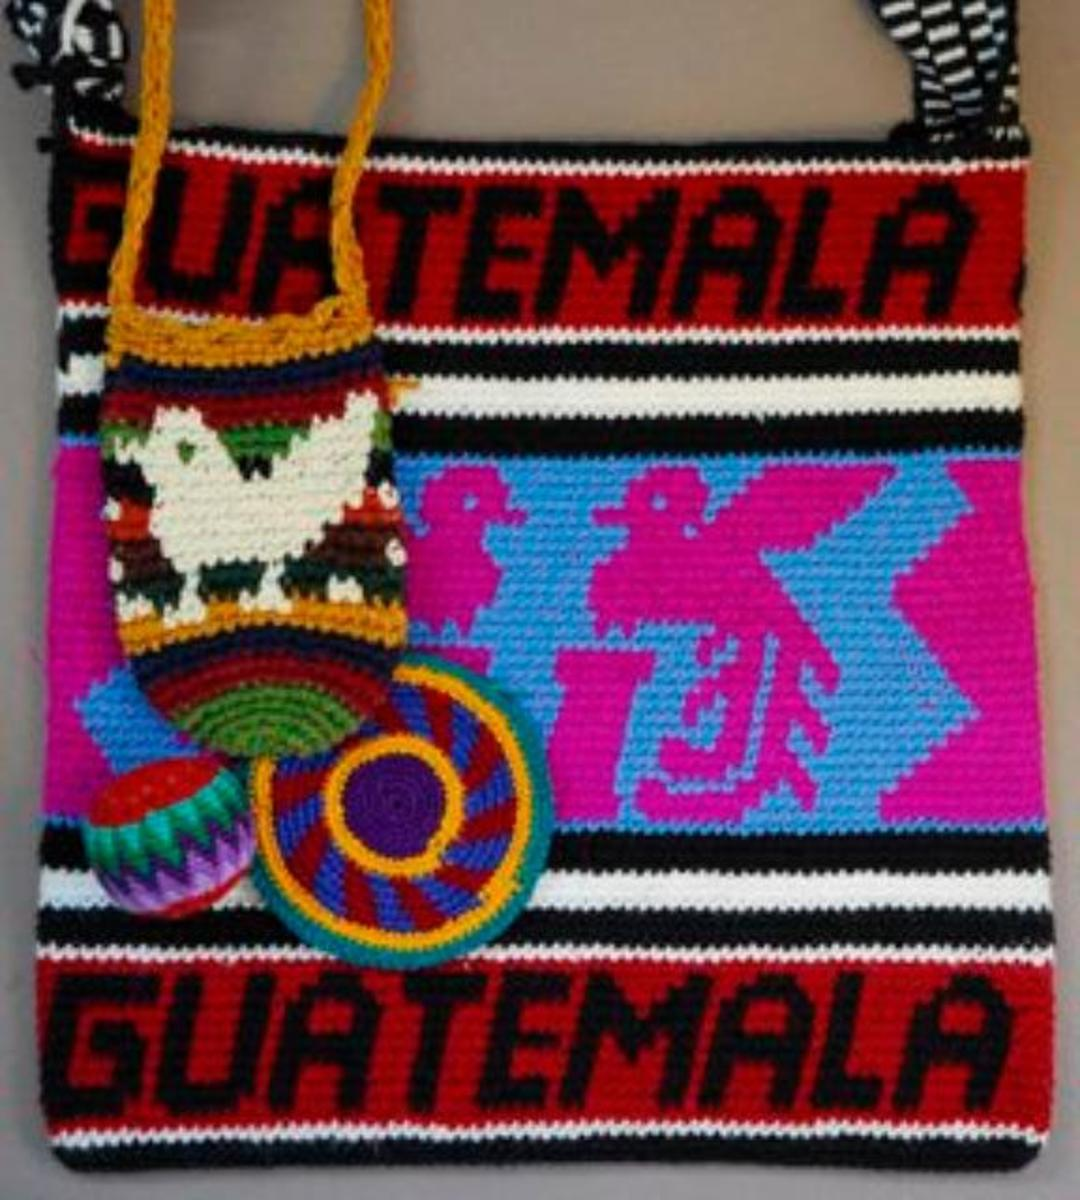 This a piece that was crocheted in Guatemala to sell to tourist. I wouldn't be able to part with it.